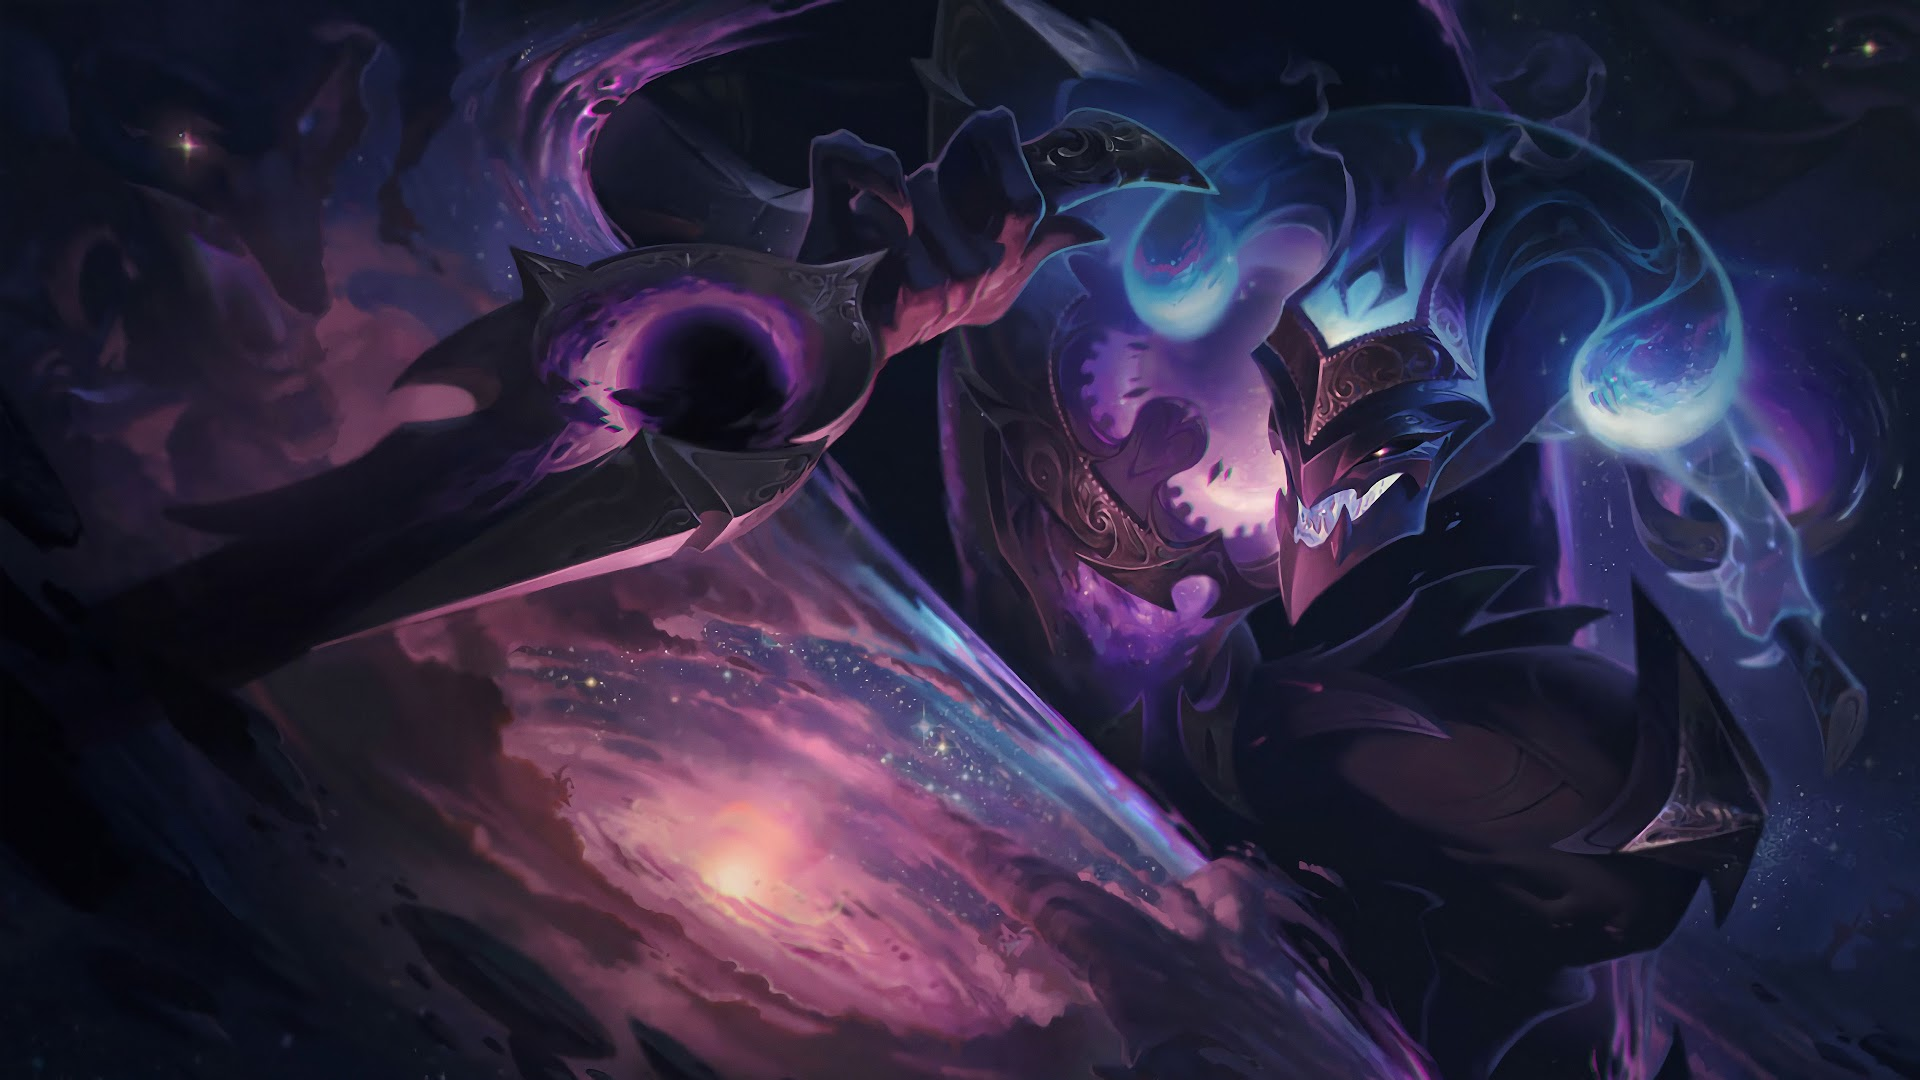 Dark Star Shaco Hd Wallpaper Background Image 1920x1080